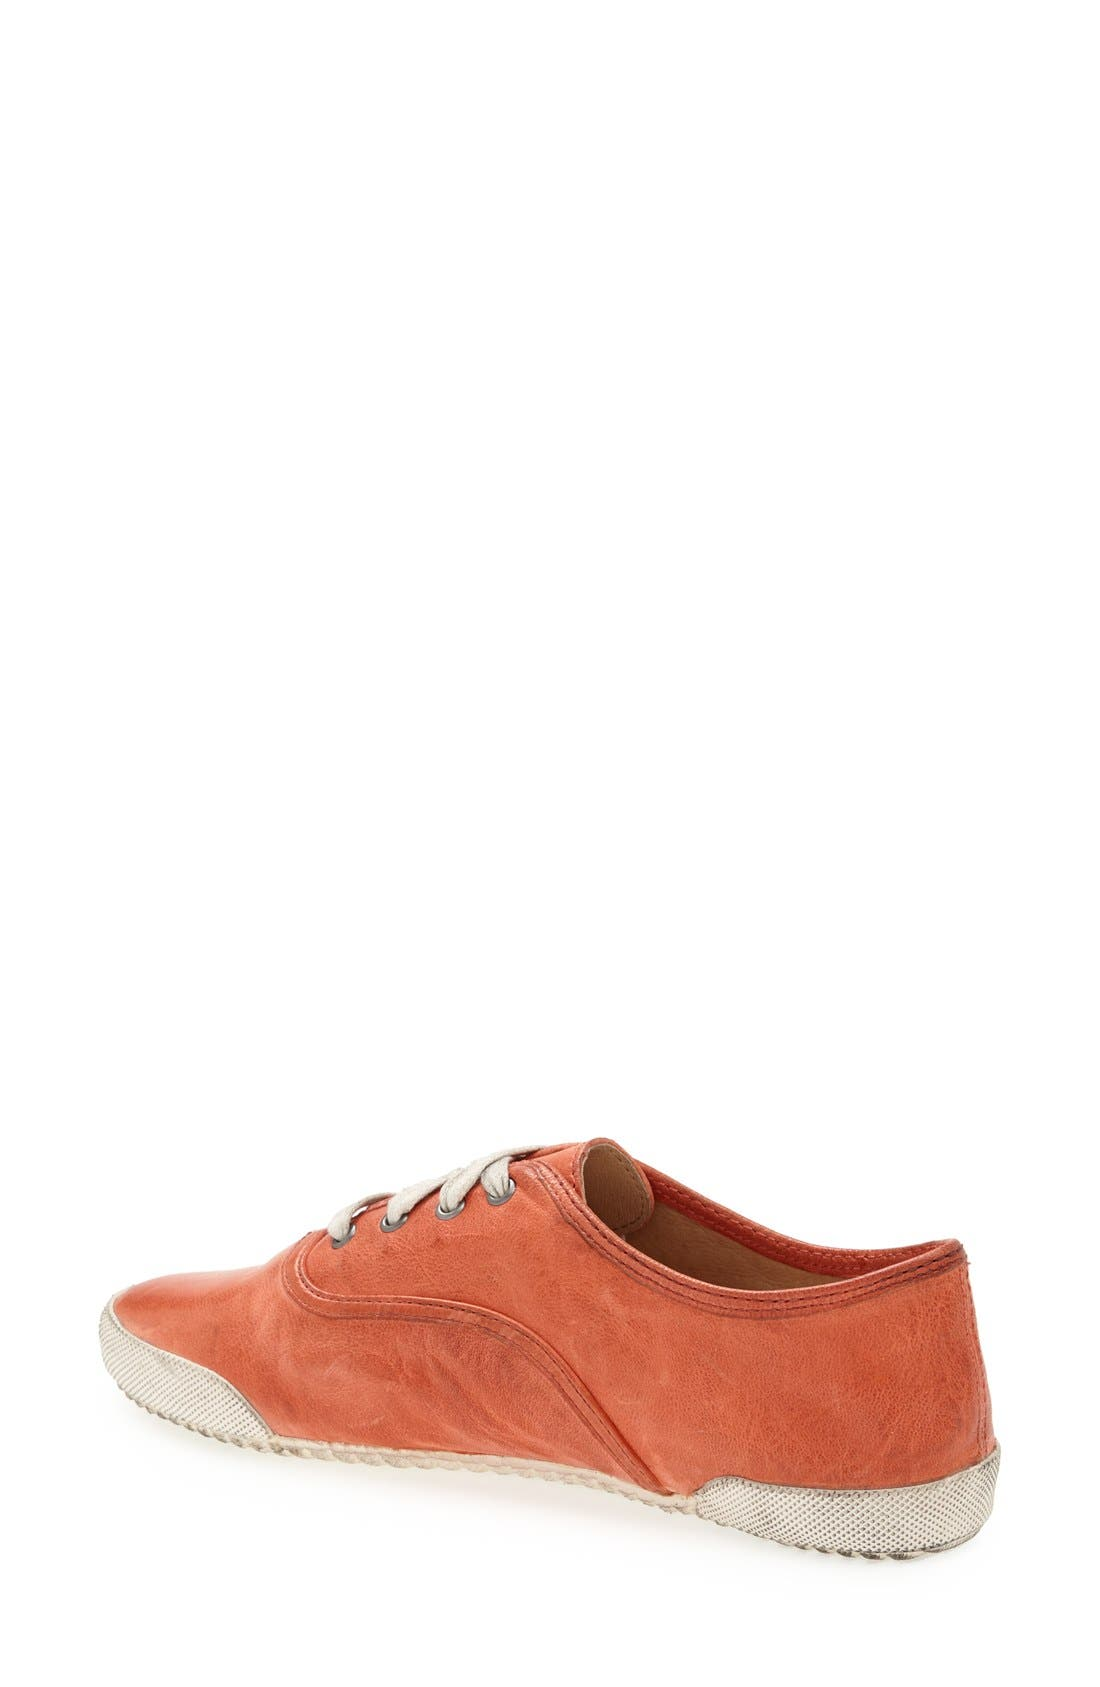 Alternate Image 2  - Frye 'Melanie' Leather Sneaker (Women)